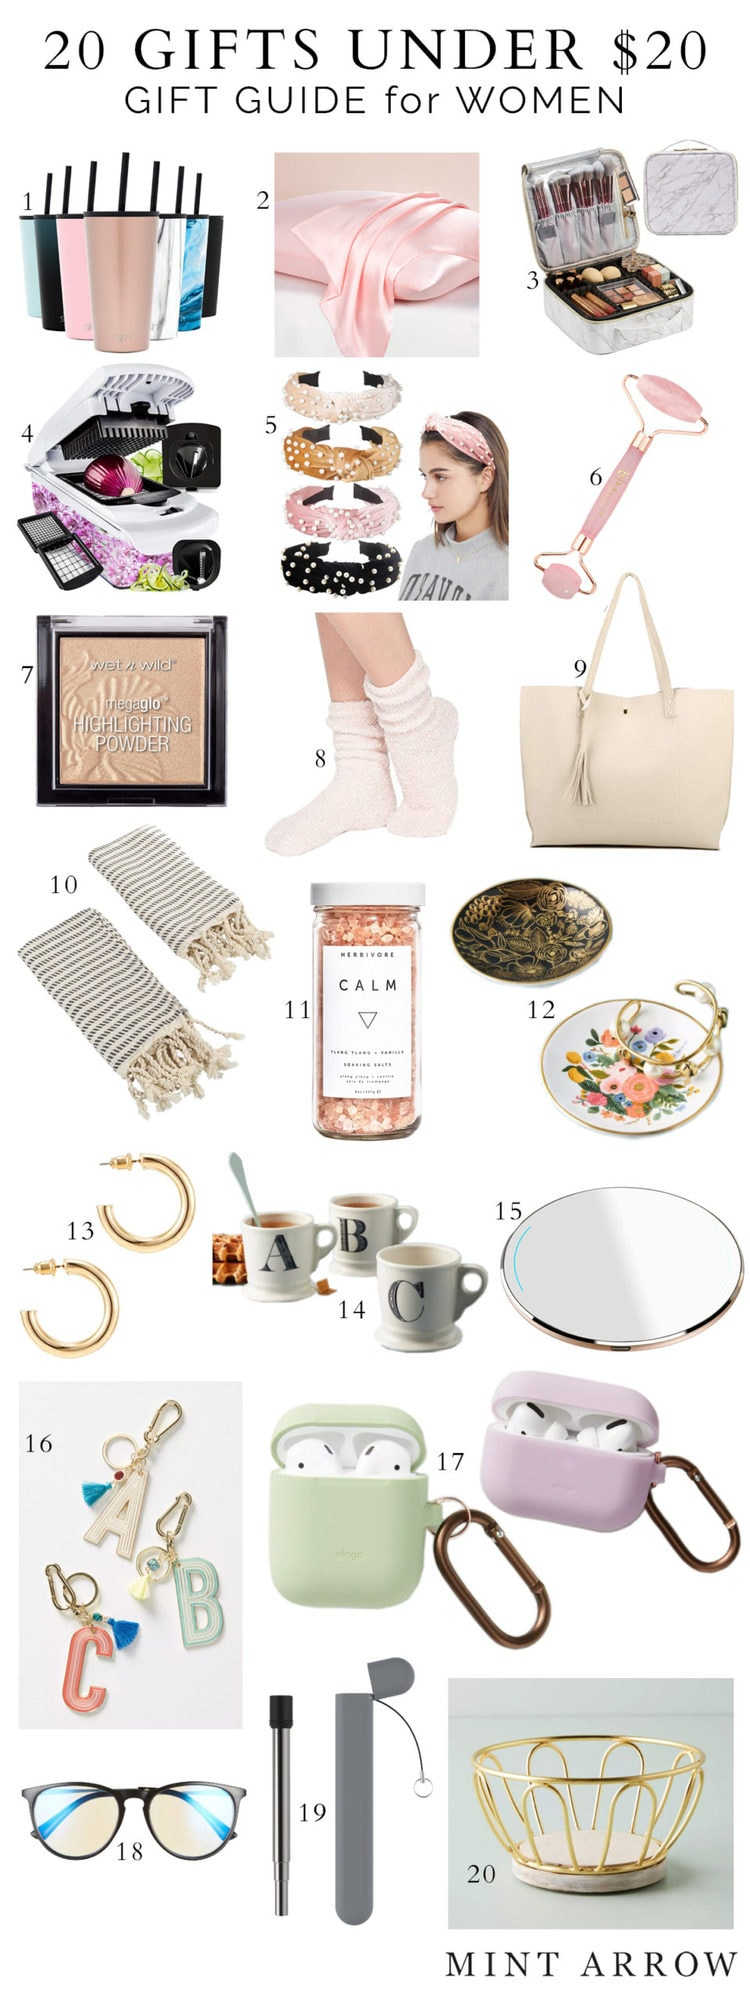 womens gifts under $20 for christmas